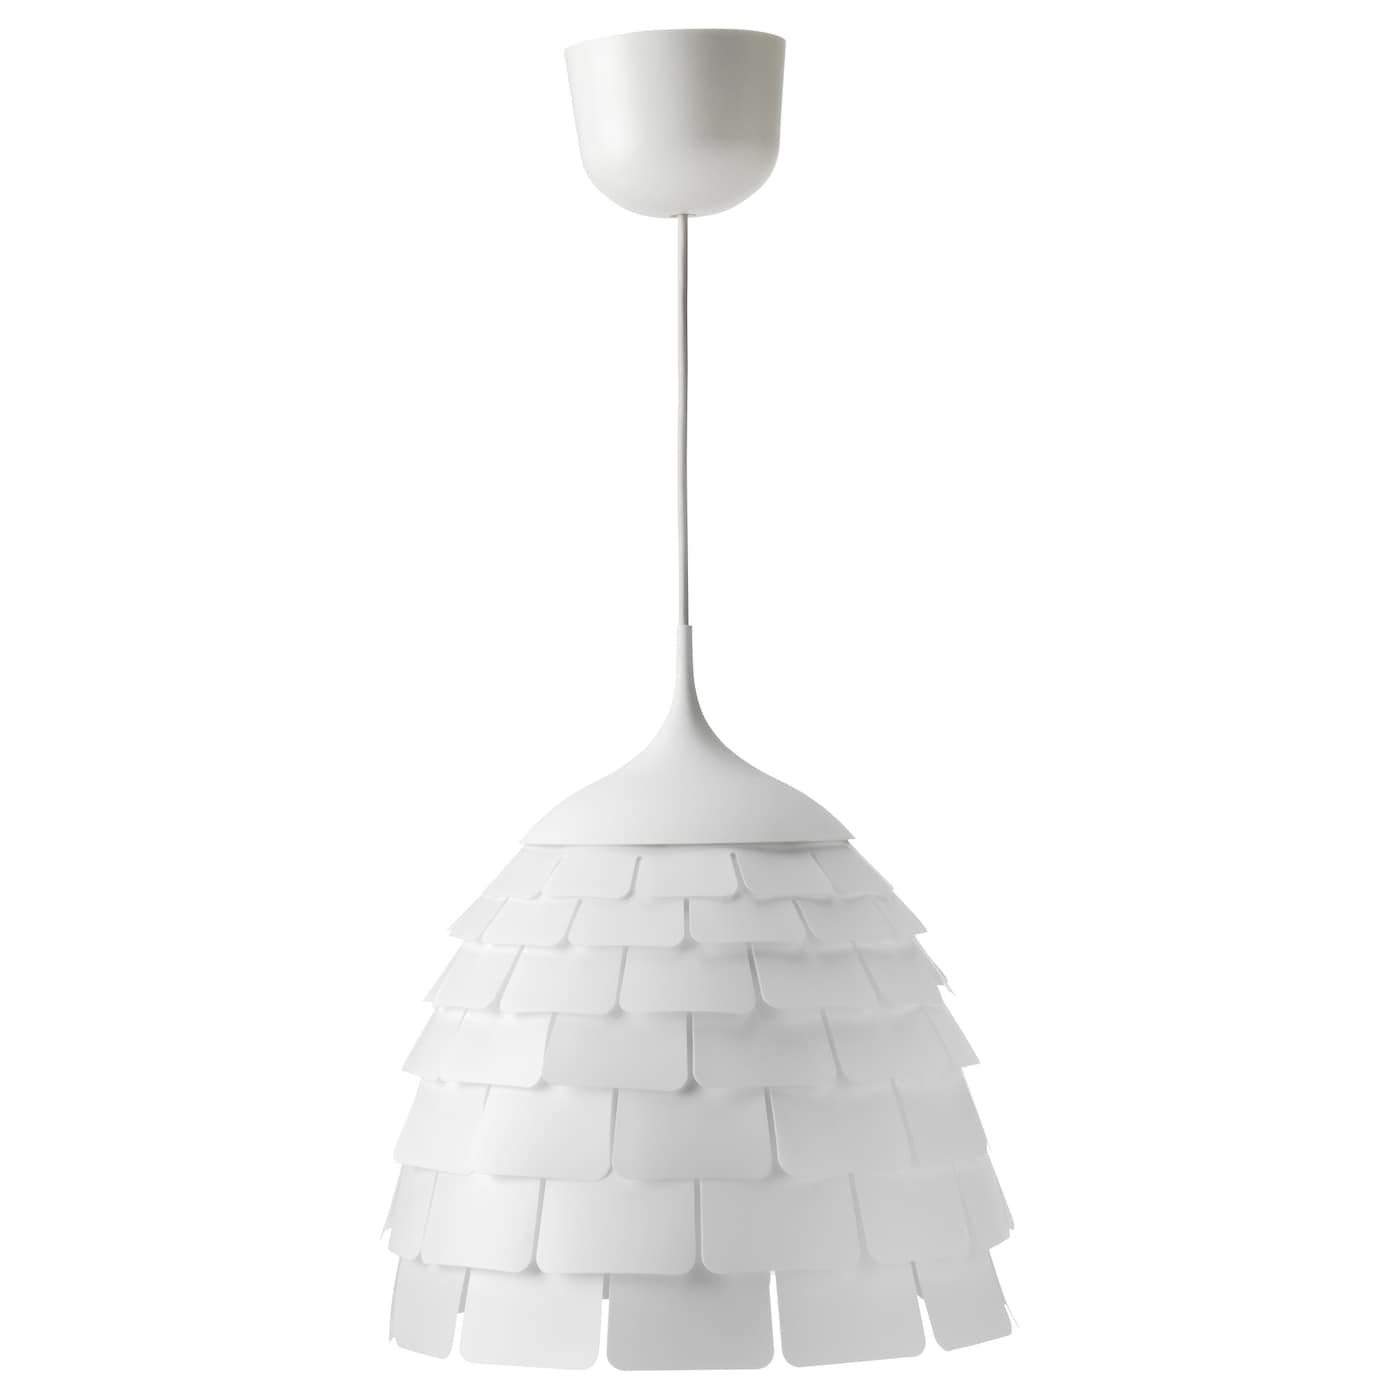 IKEA KVARTÄR pendant lamp Diffused light that provides good general light in the room.